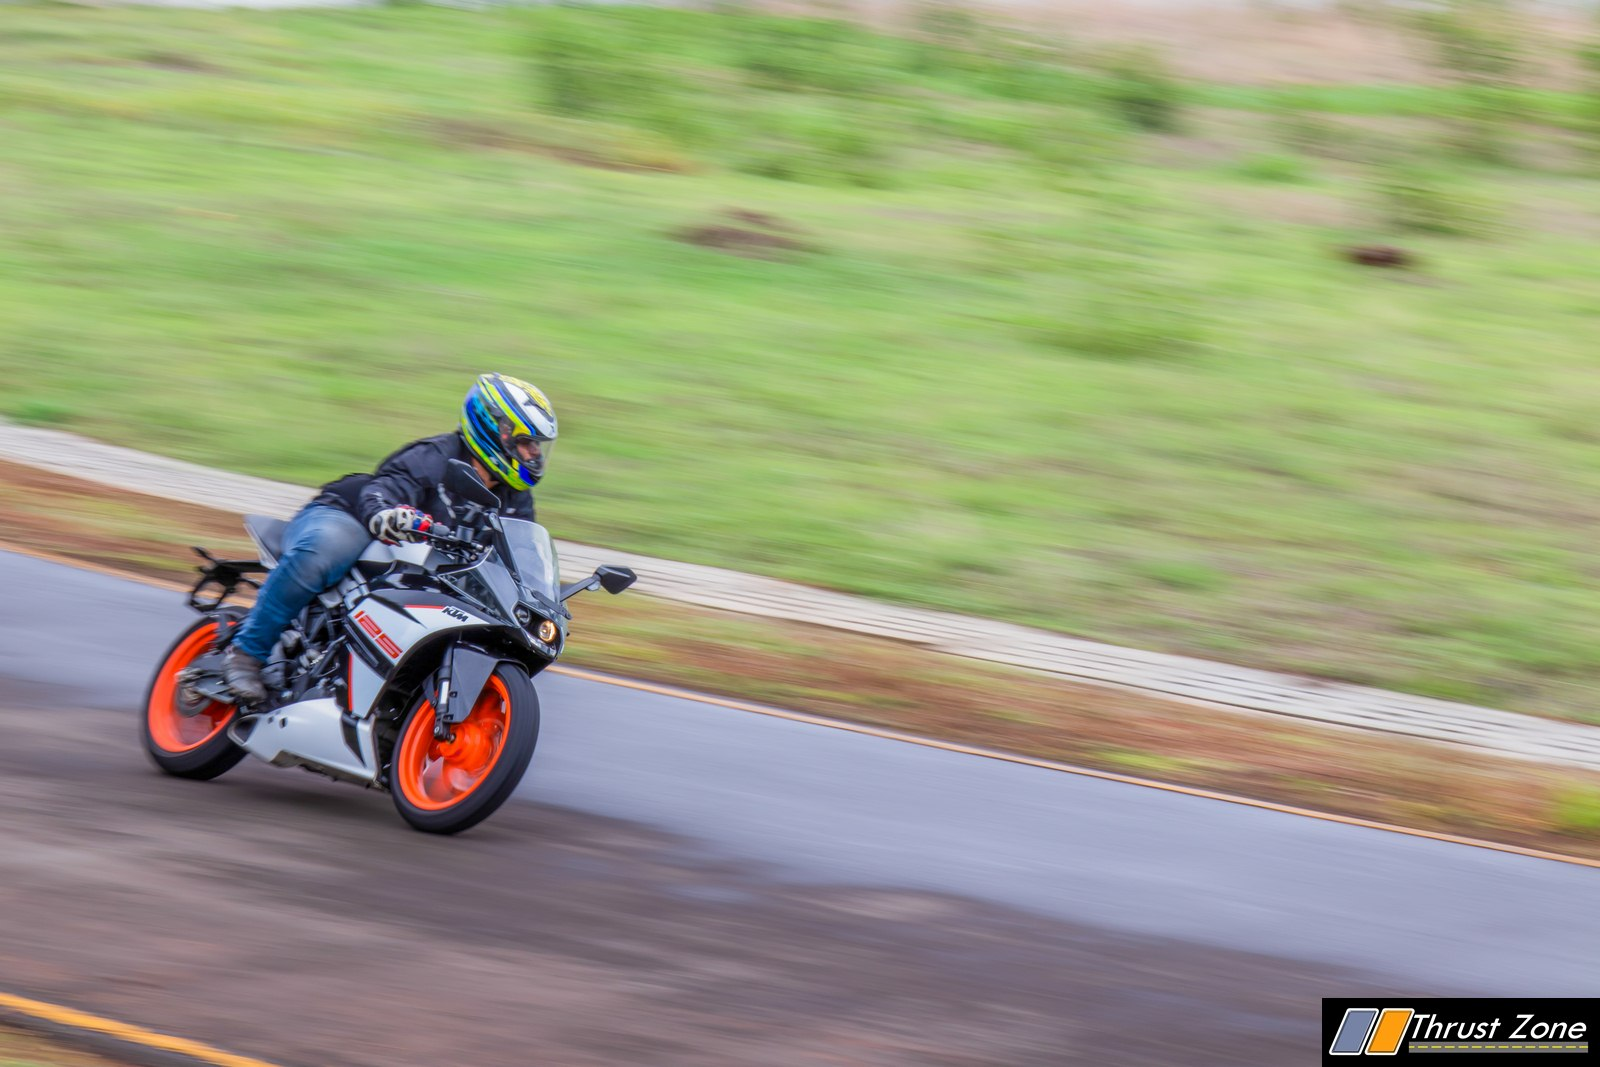 https://www.thrustzone.com/wp-content/uploads/2019/07/2019-KTM-RC-125-india-review-12.jpg